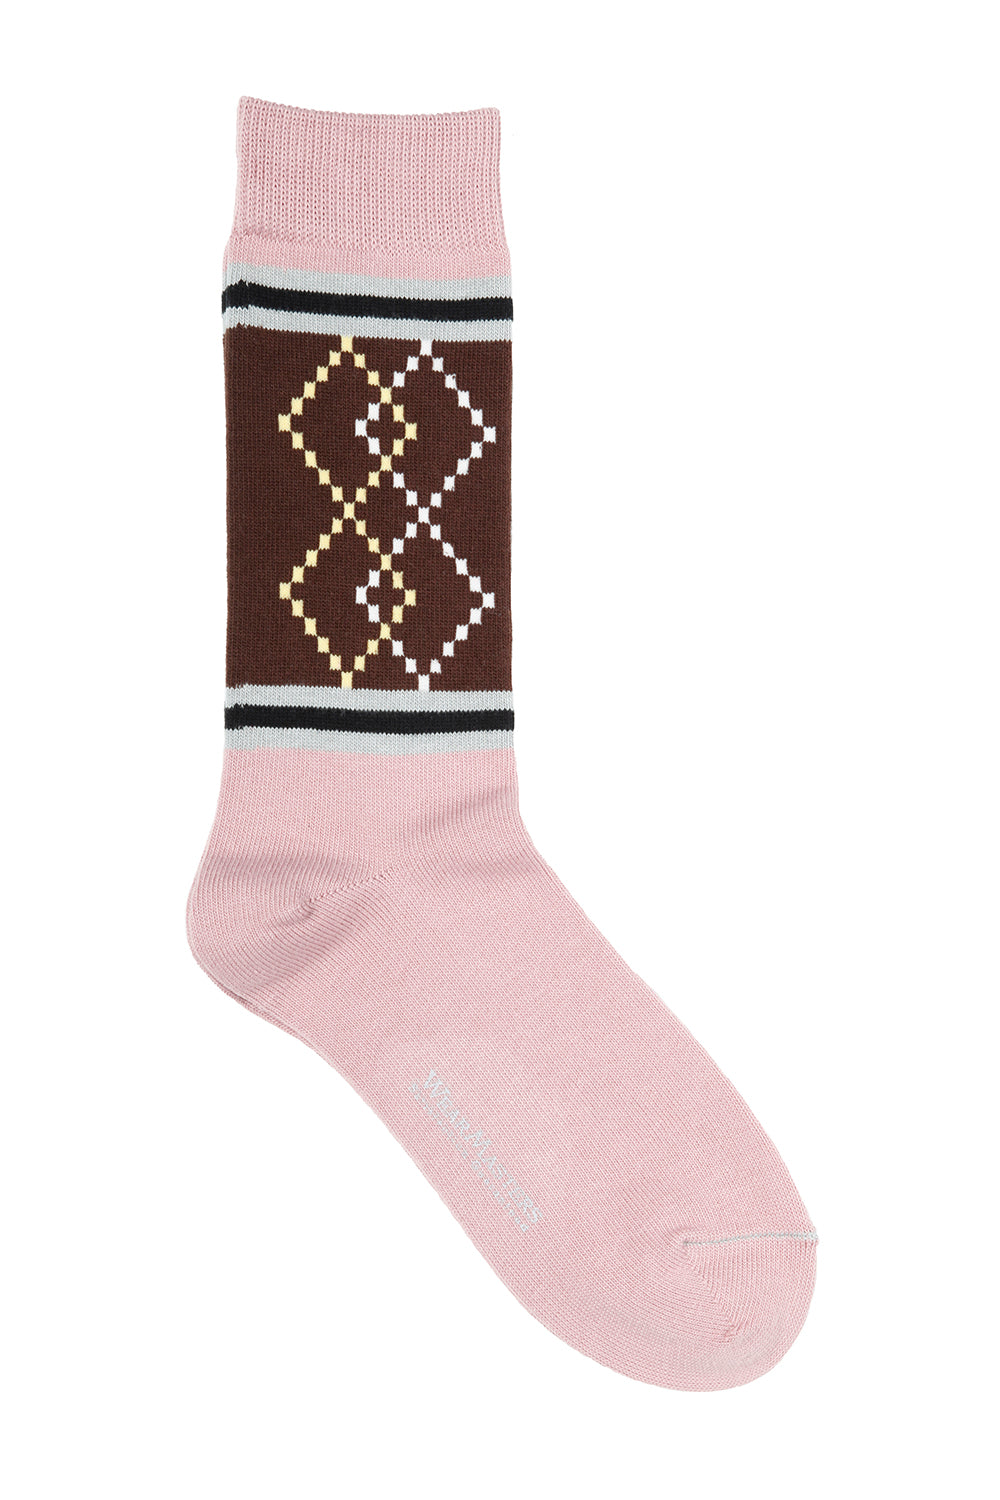 Lot.658 Two Tone Diamond Sox -Pink-